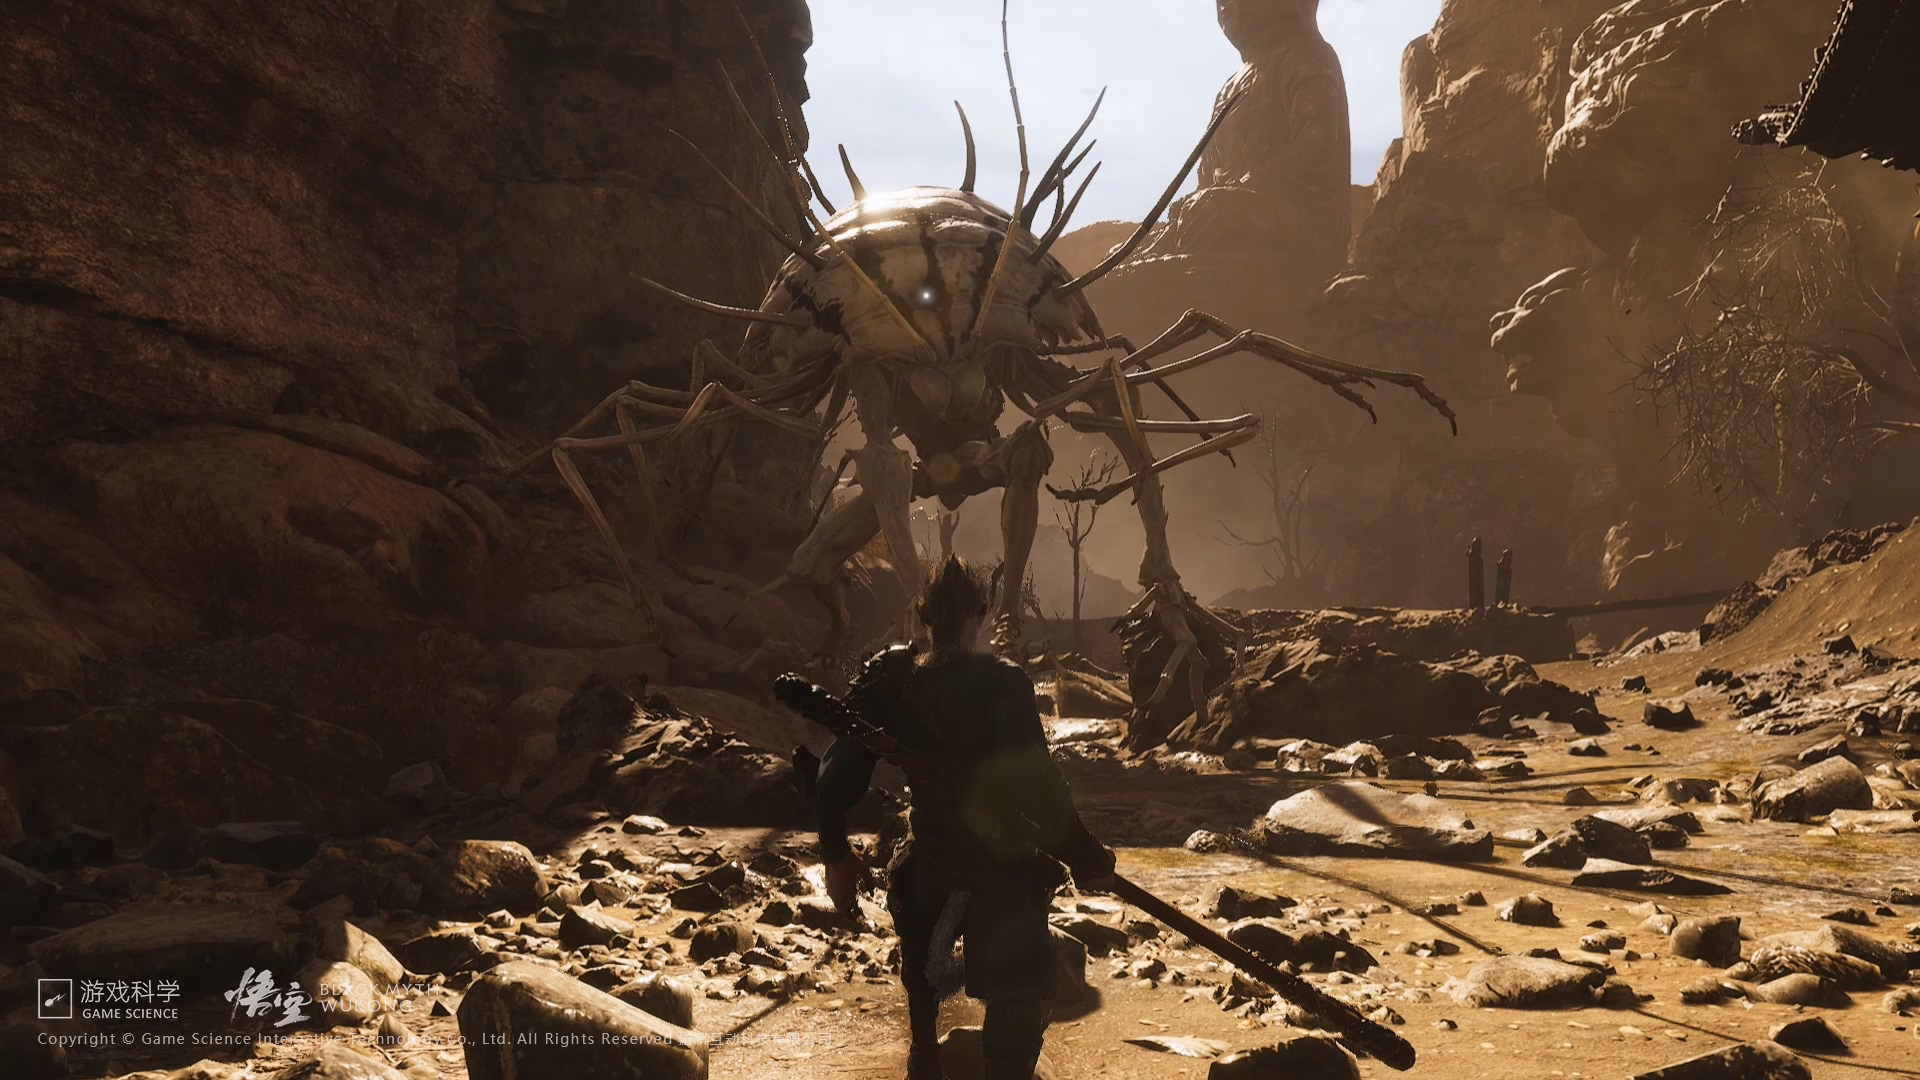 screenshot7 Black Myth Wukong Gameplay Impressions & Reaction to the Unreal Engine 5 Trailer